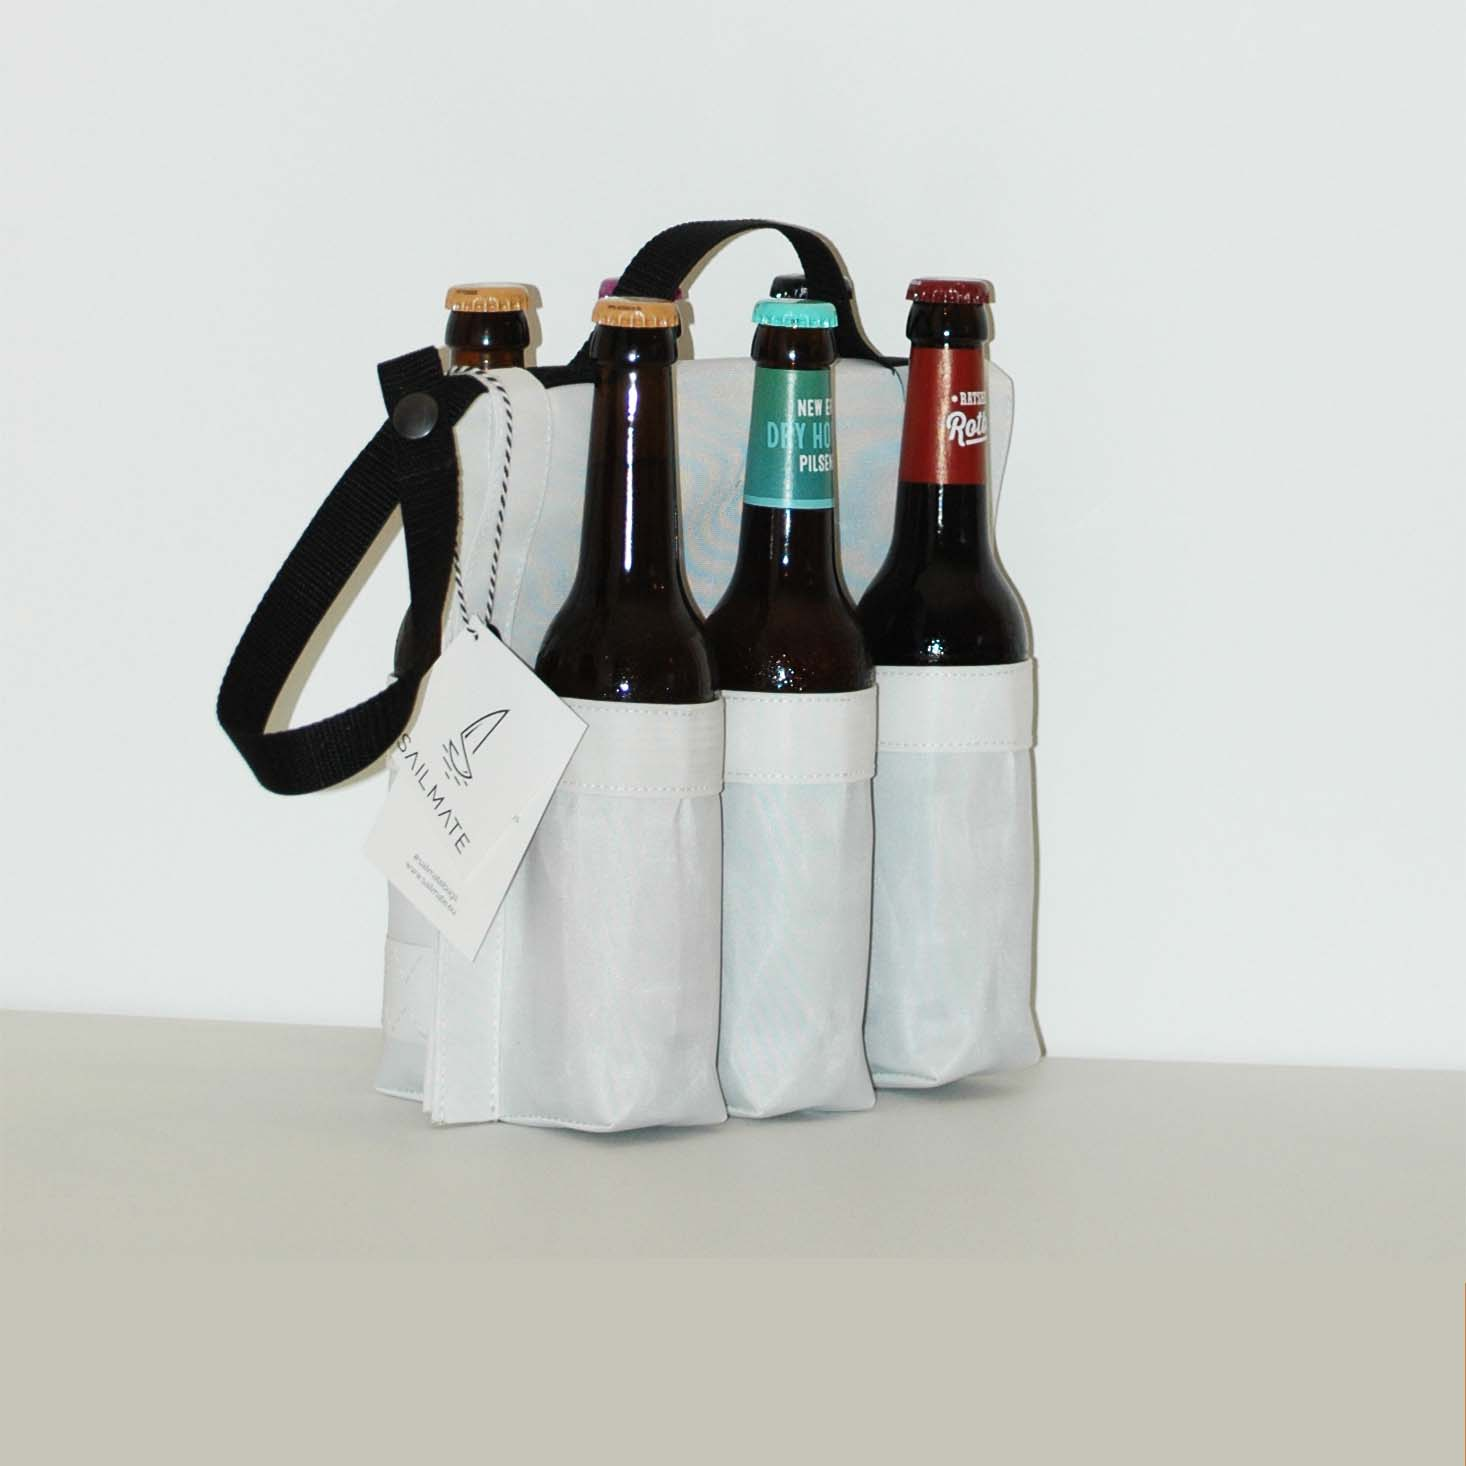 A super flexible beer carrier that is handy in many conditions